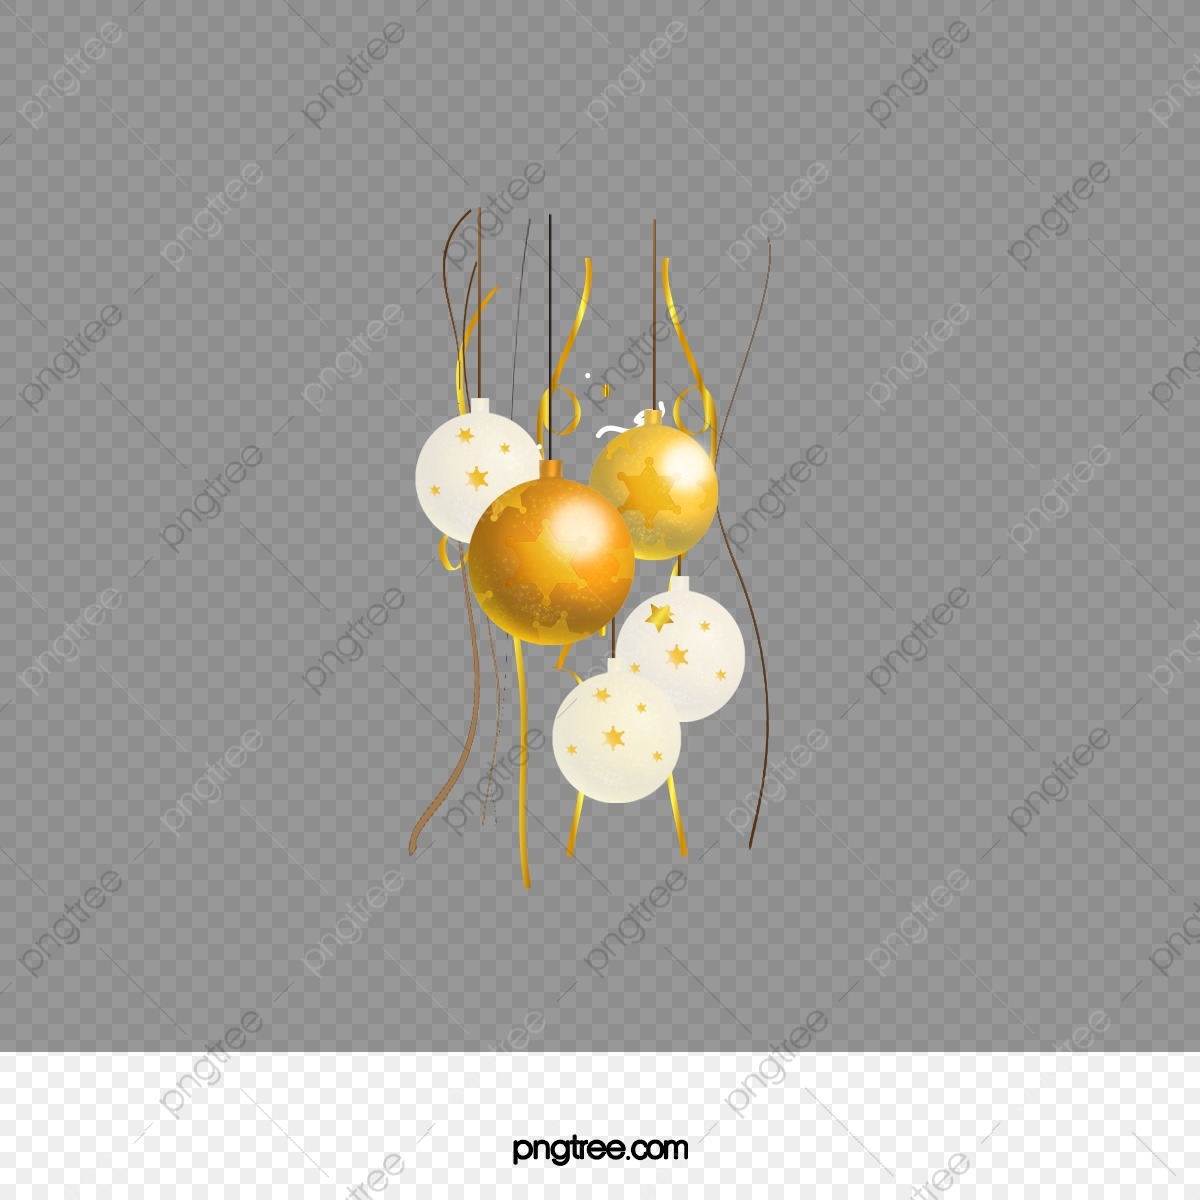 Christmas Chain Clipart.Painted Yellow Christmas Ball Golden Chain Golden Chain